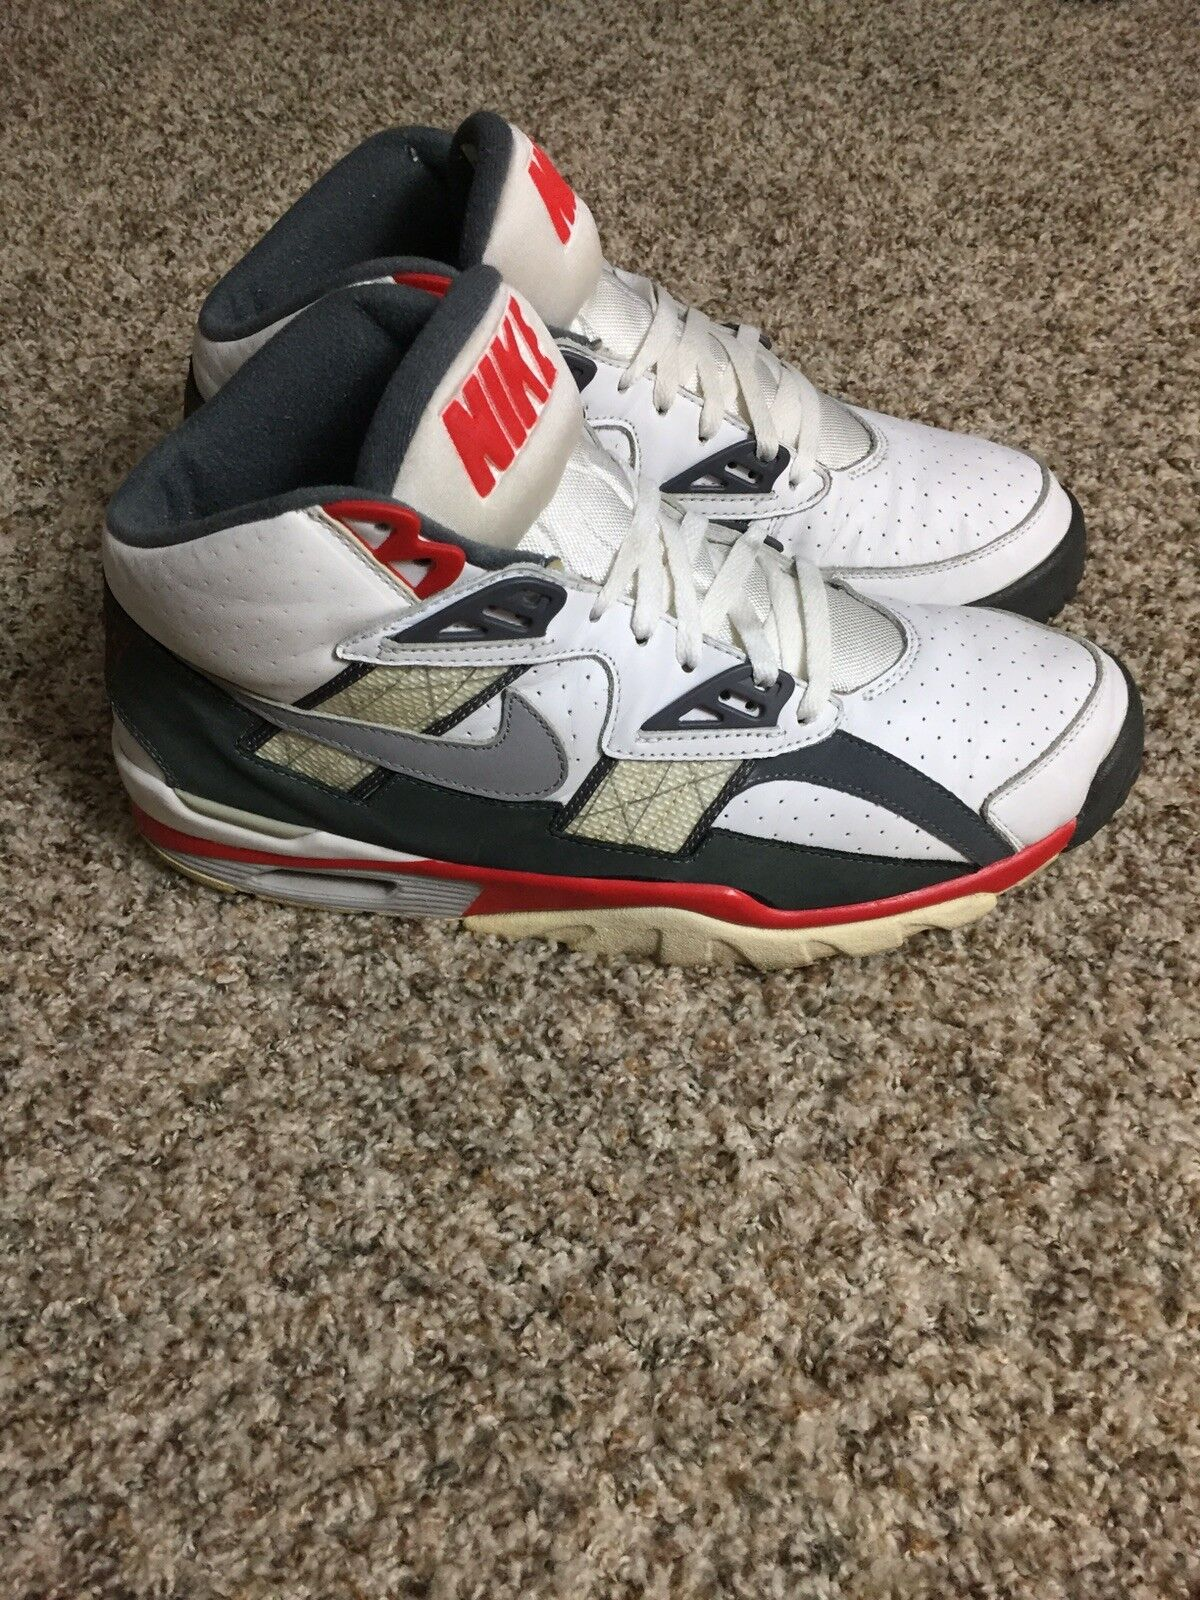 Mens Nike Air Trainer SC High Bo Jackson 2000 White Comet Red 673185 106 Size 13